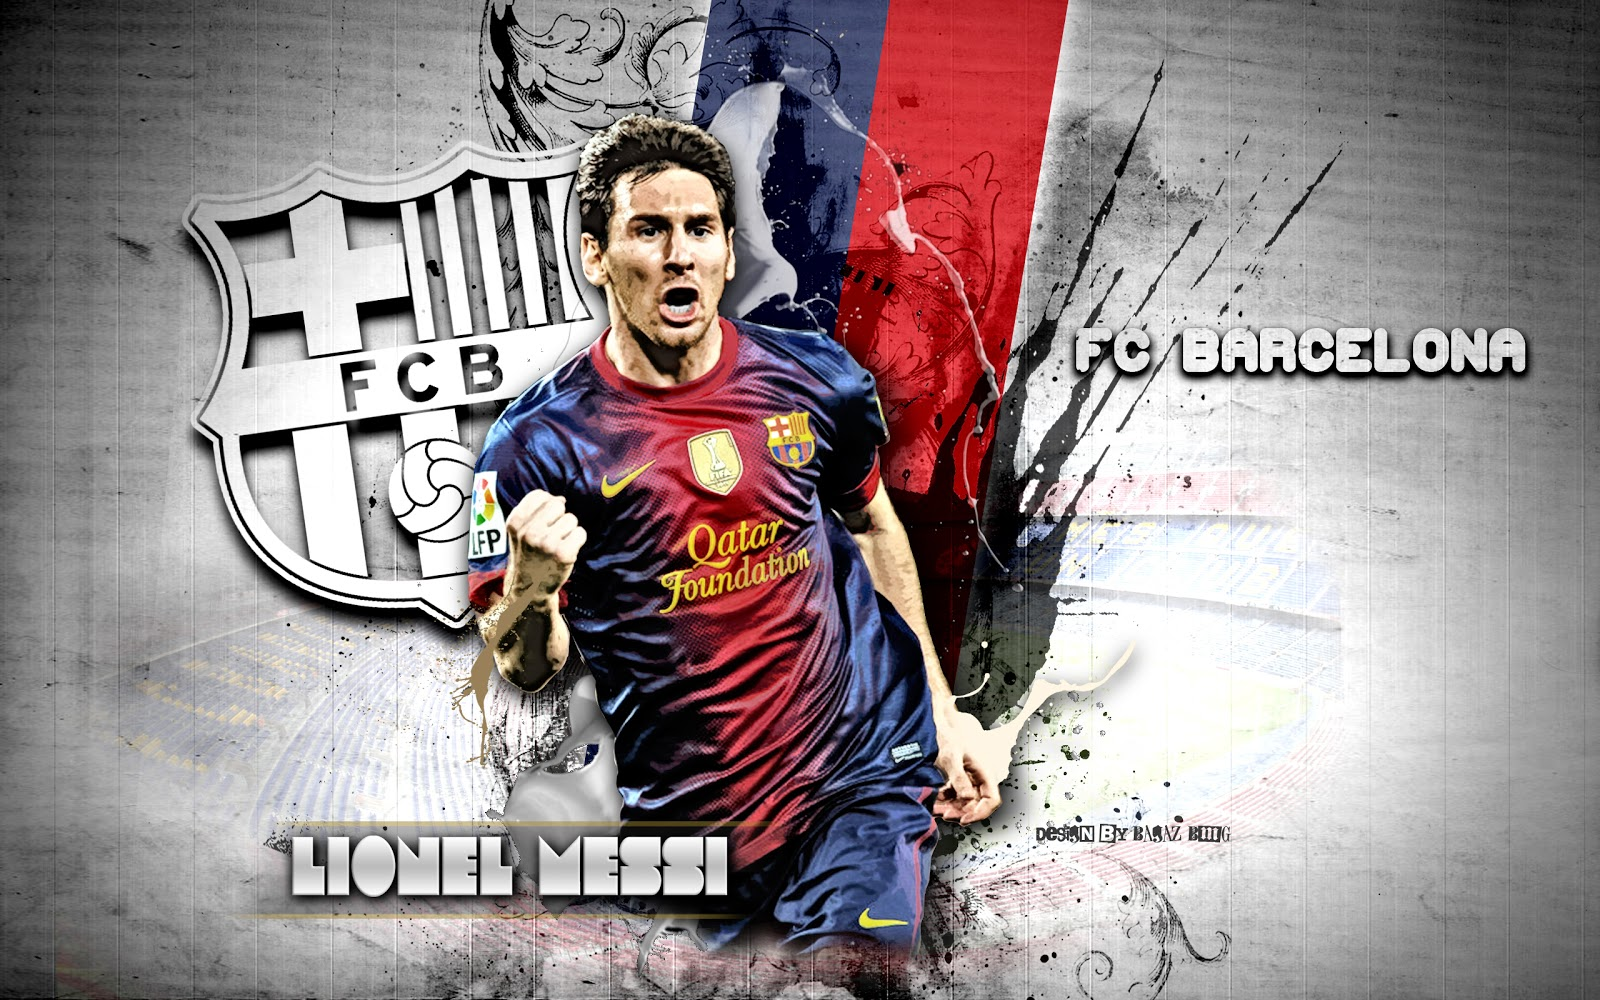 lionel messi new 2013 wallpaper hd